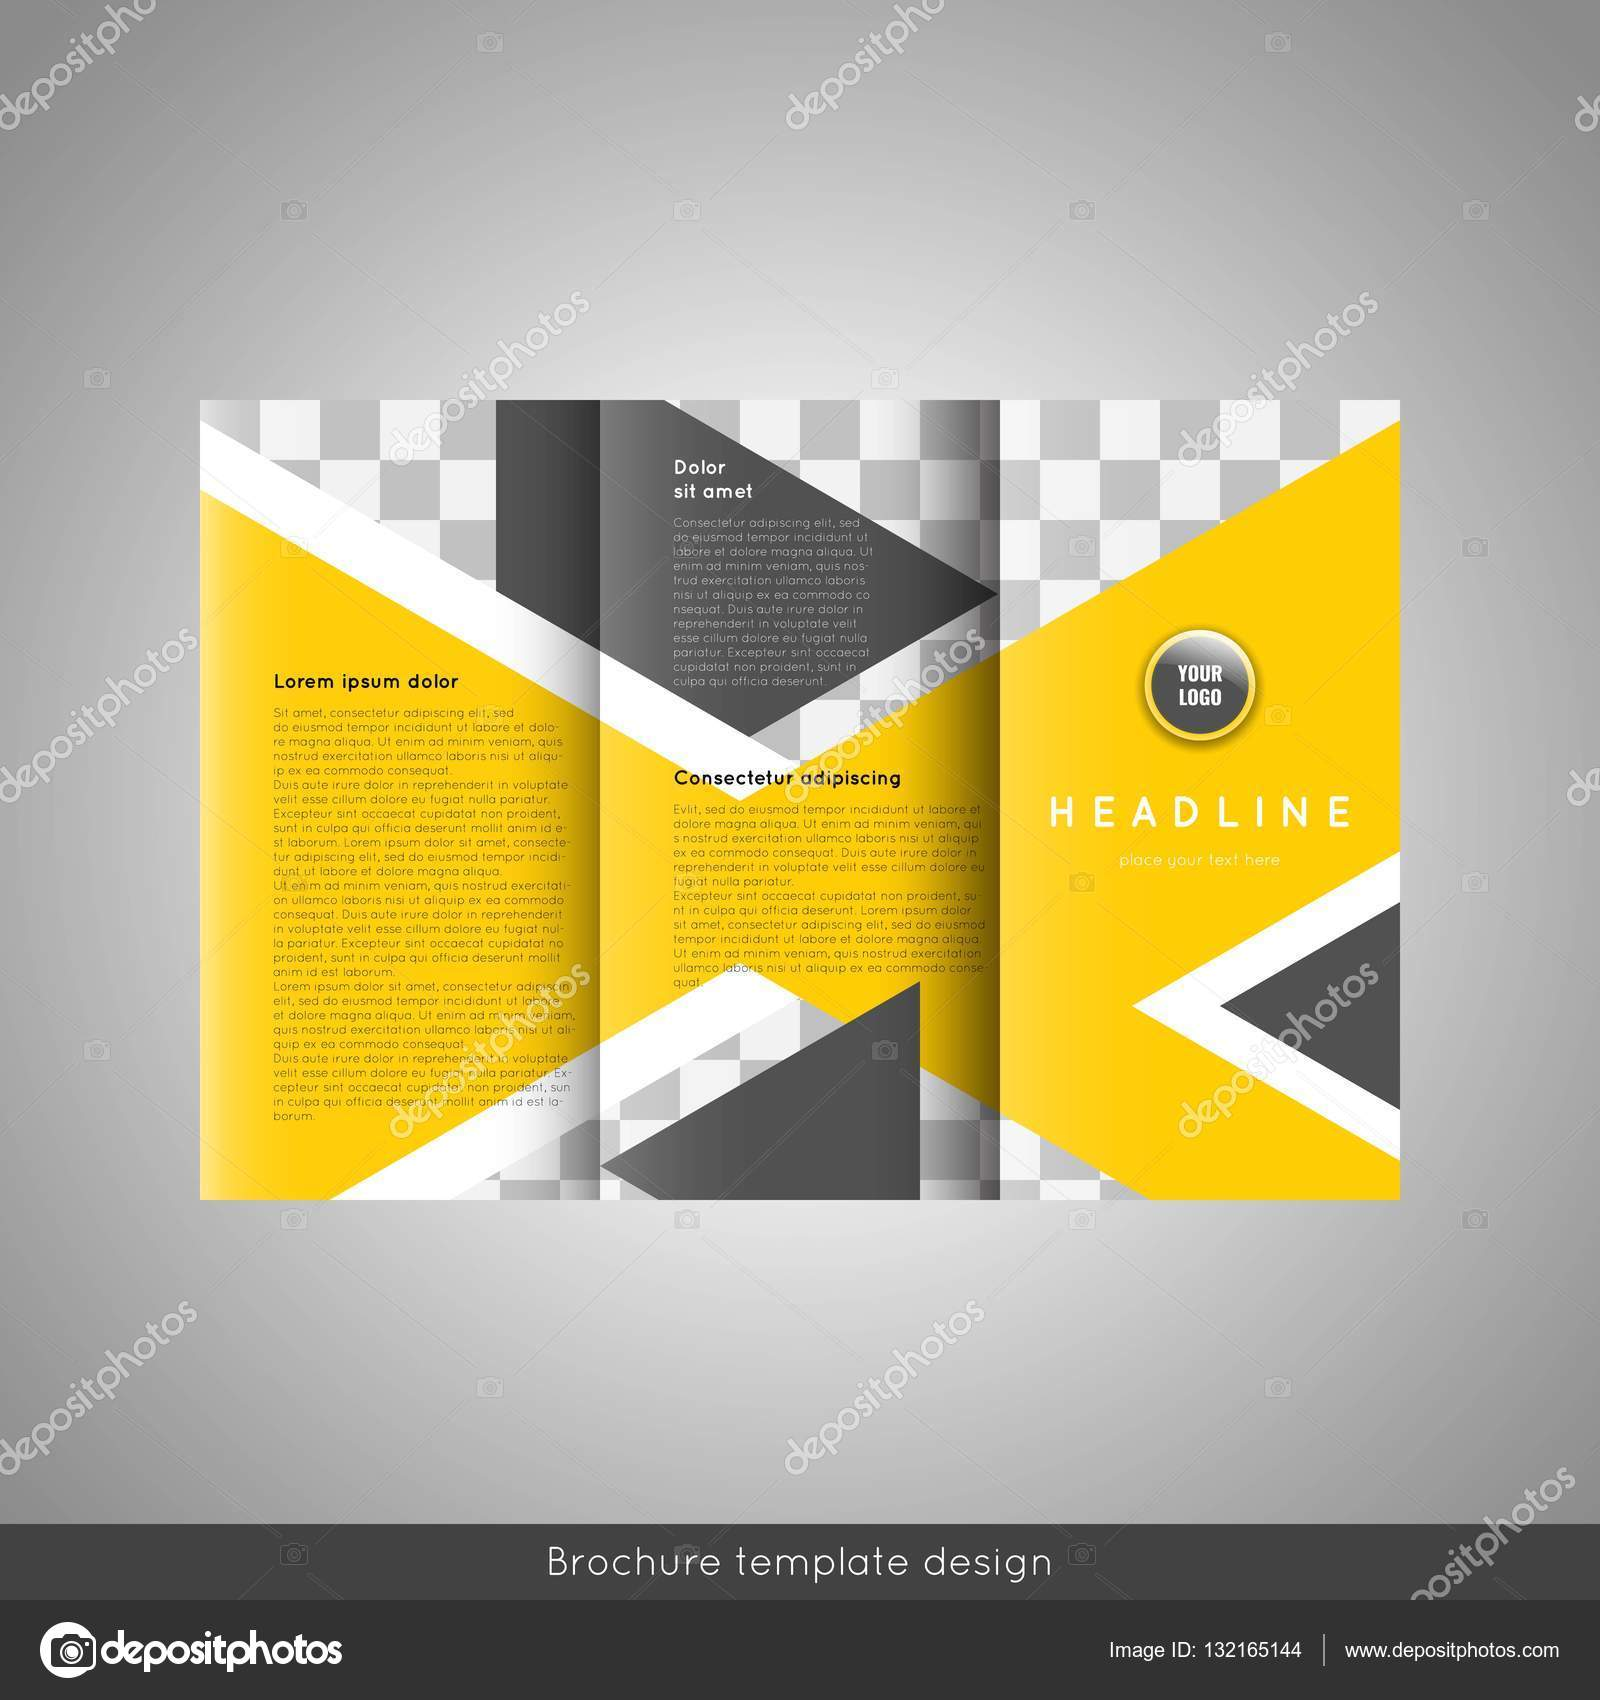 Business Trifold Brochure Template Design Wavy Lines Background And